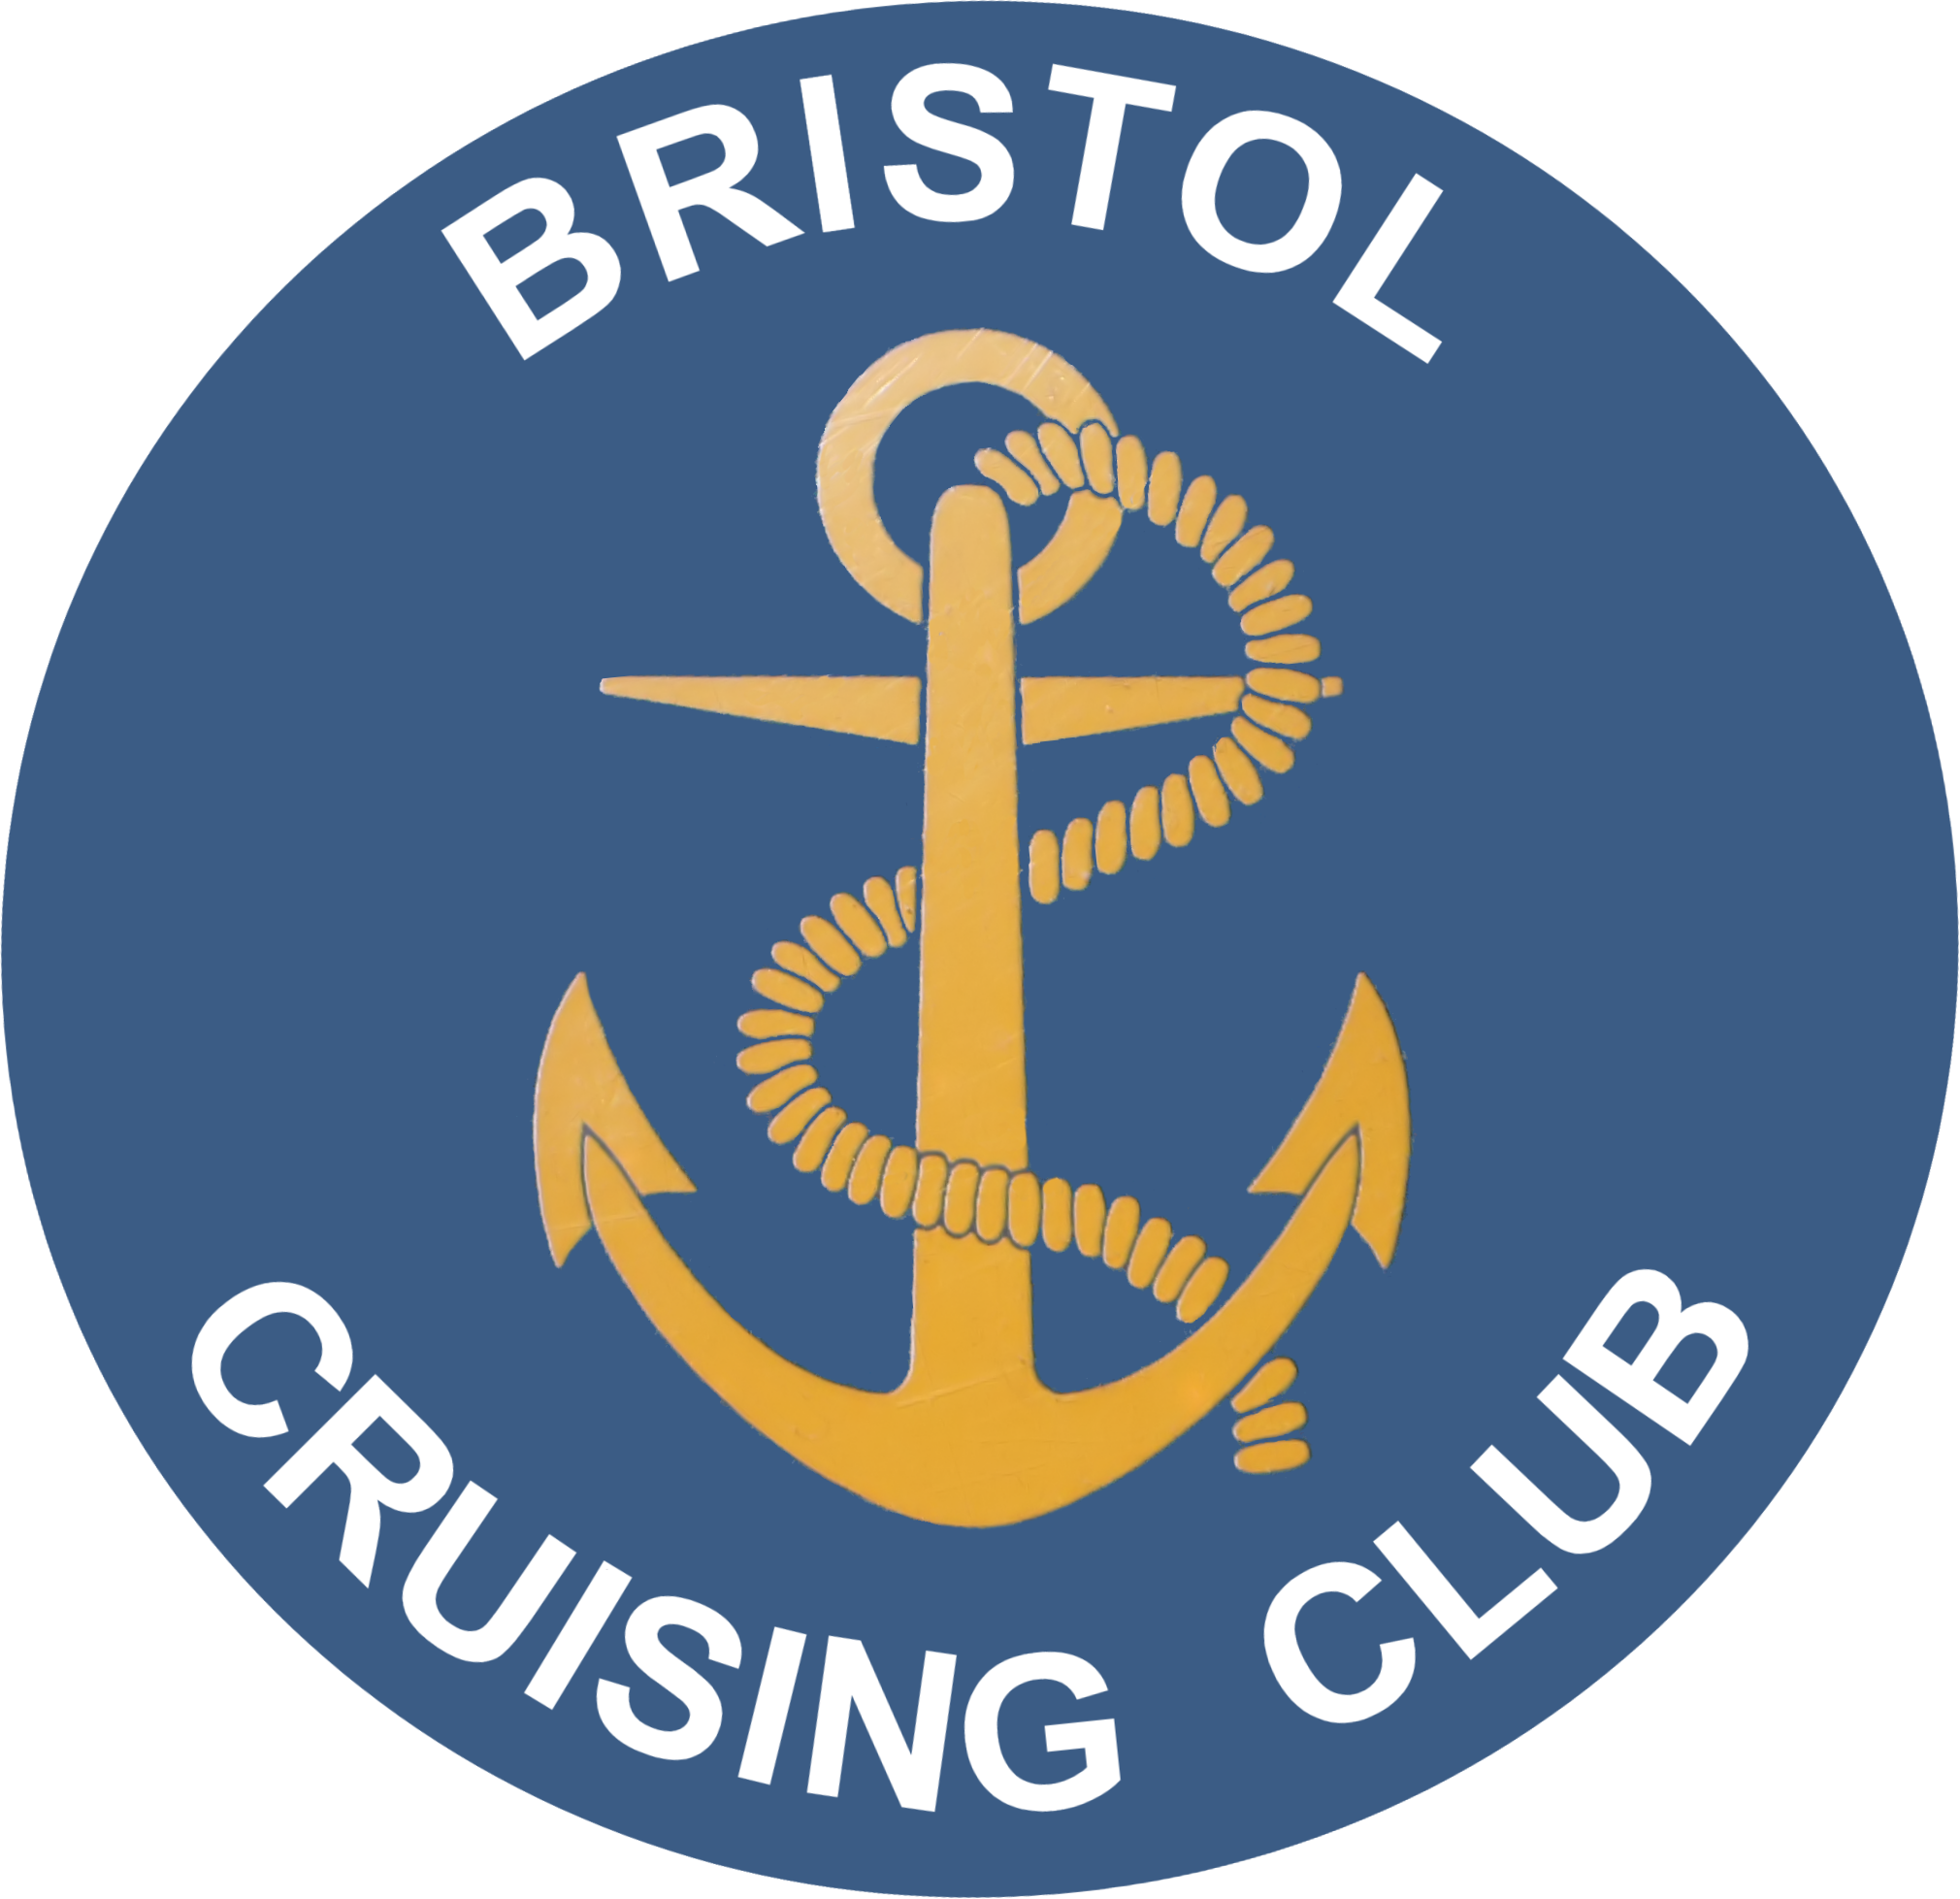 Bristol Cruising Club